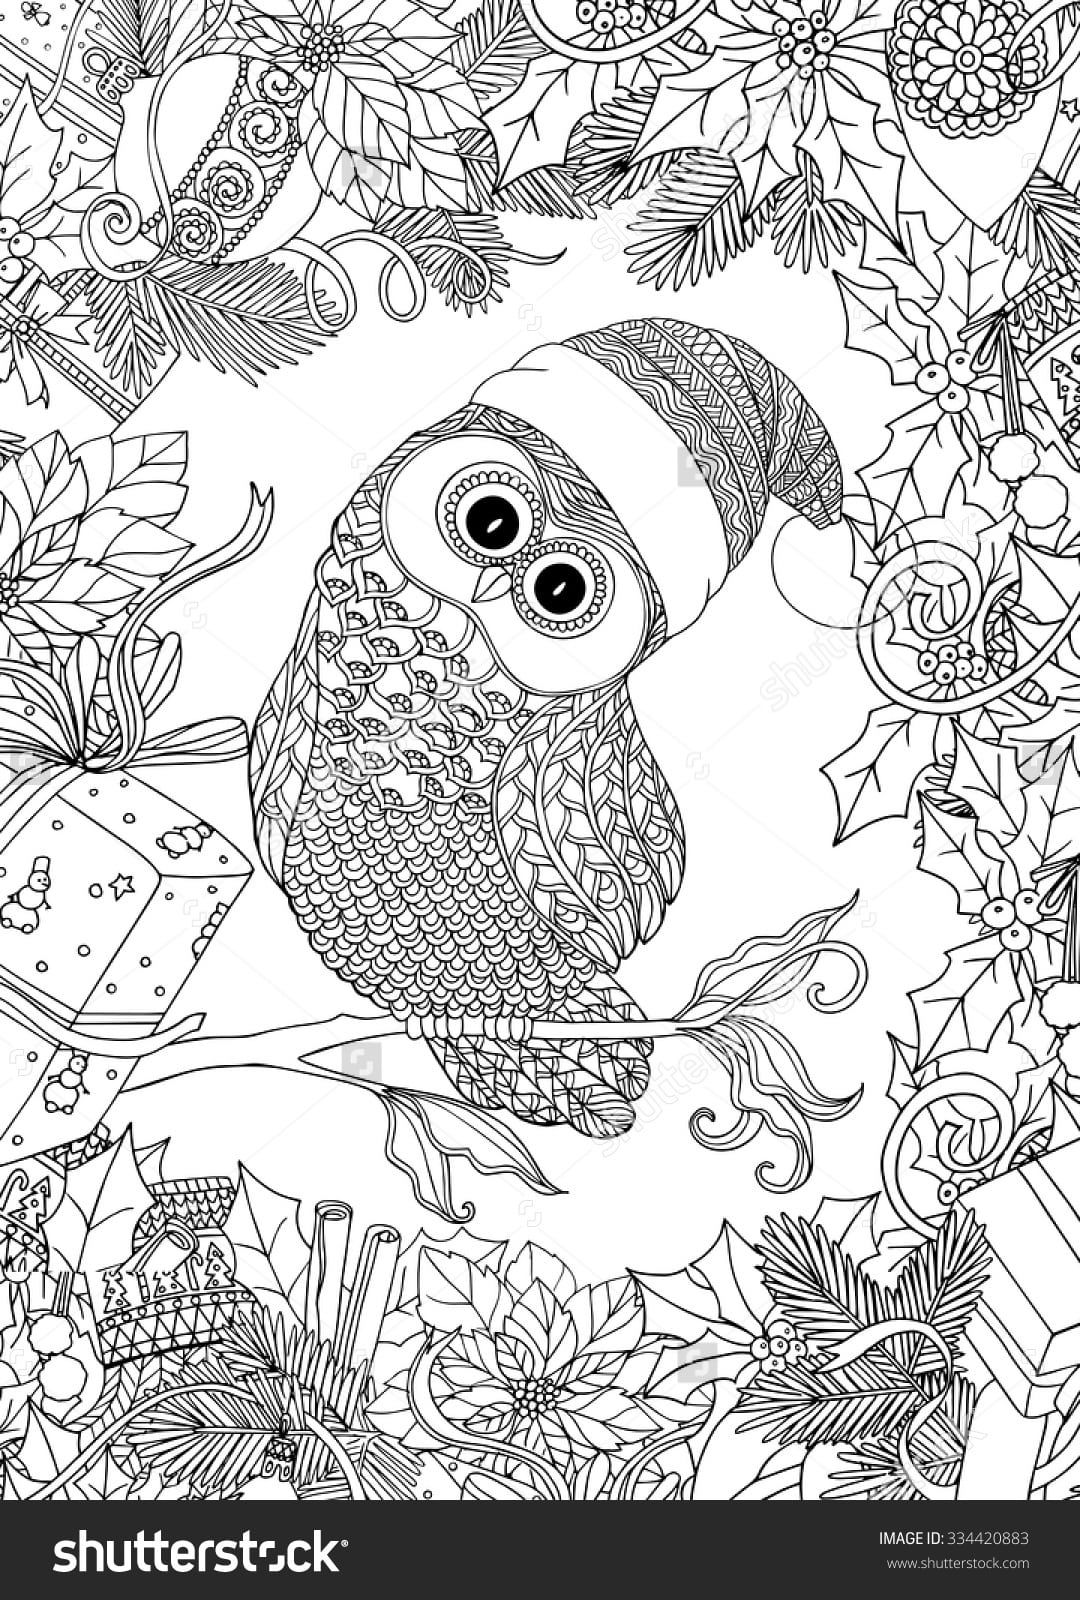 Adult Christmas Coloring Pages Owl Coloring Pages Christmas Coloring Pages Christmas Coloring Books